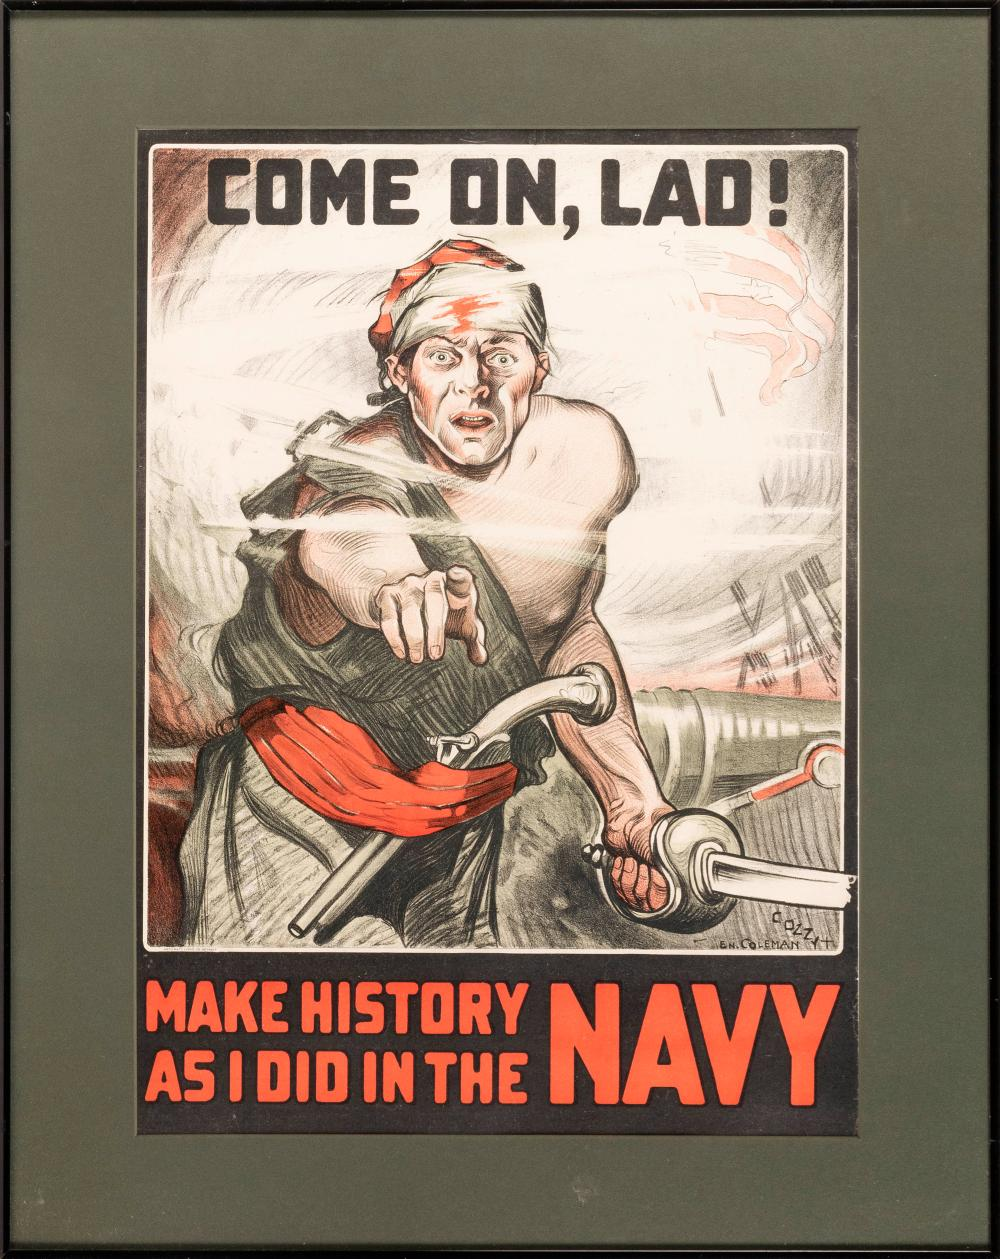 """""""COME ON, LAD! MAKE HISTORY AS I DID IN THE NAVY"""" WORLD WAR I POSTER Published by the Artcraft Litho. Co., Detroit. Depicts a sailor..."""